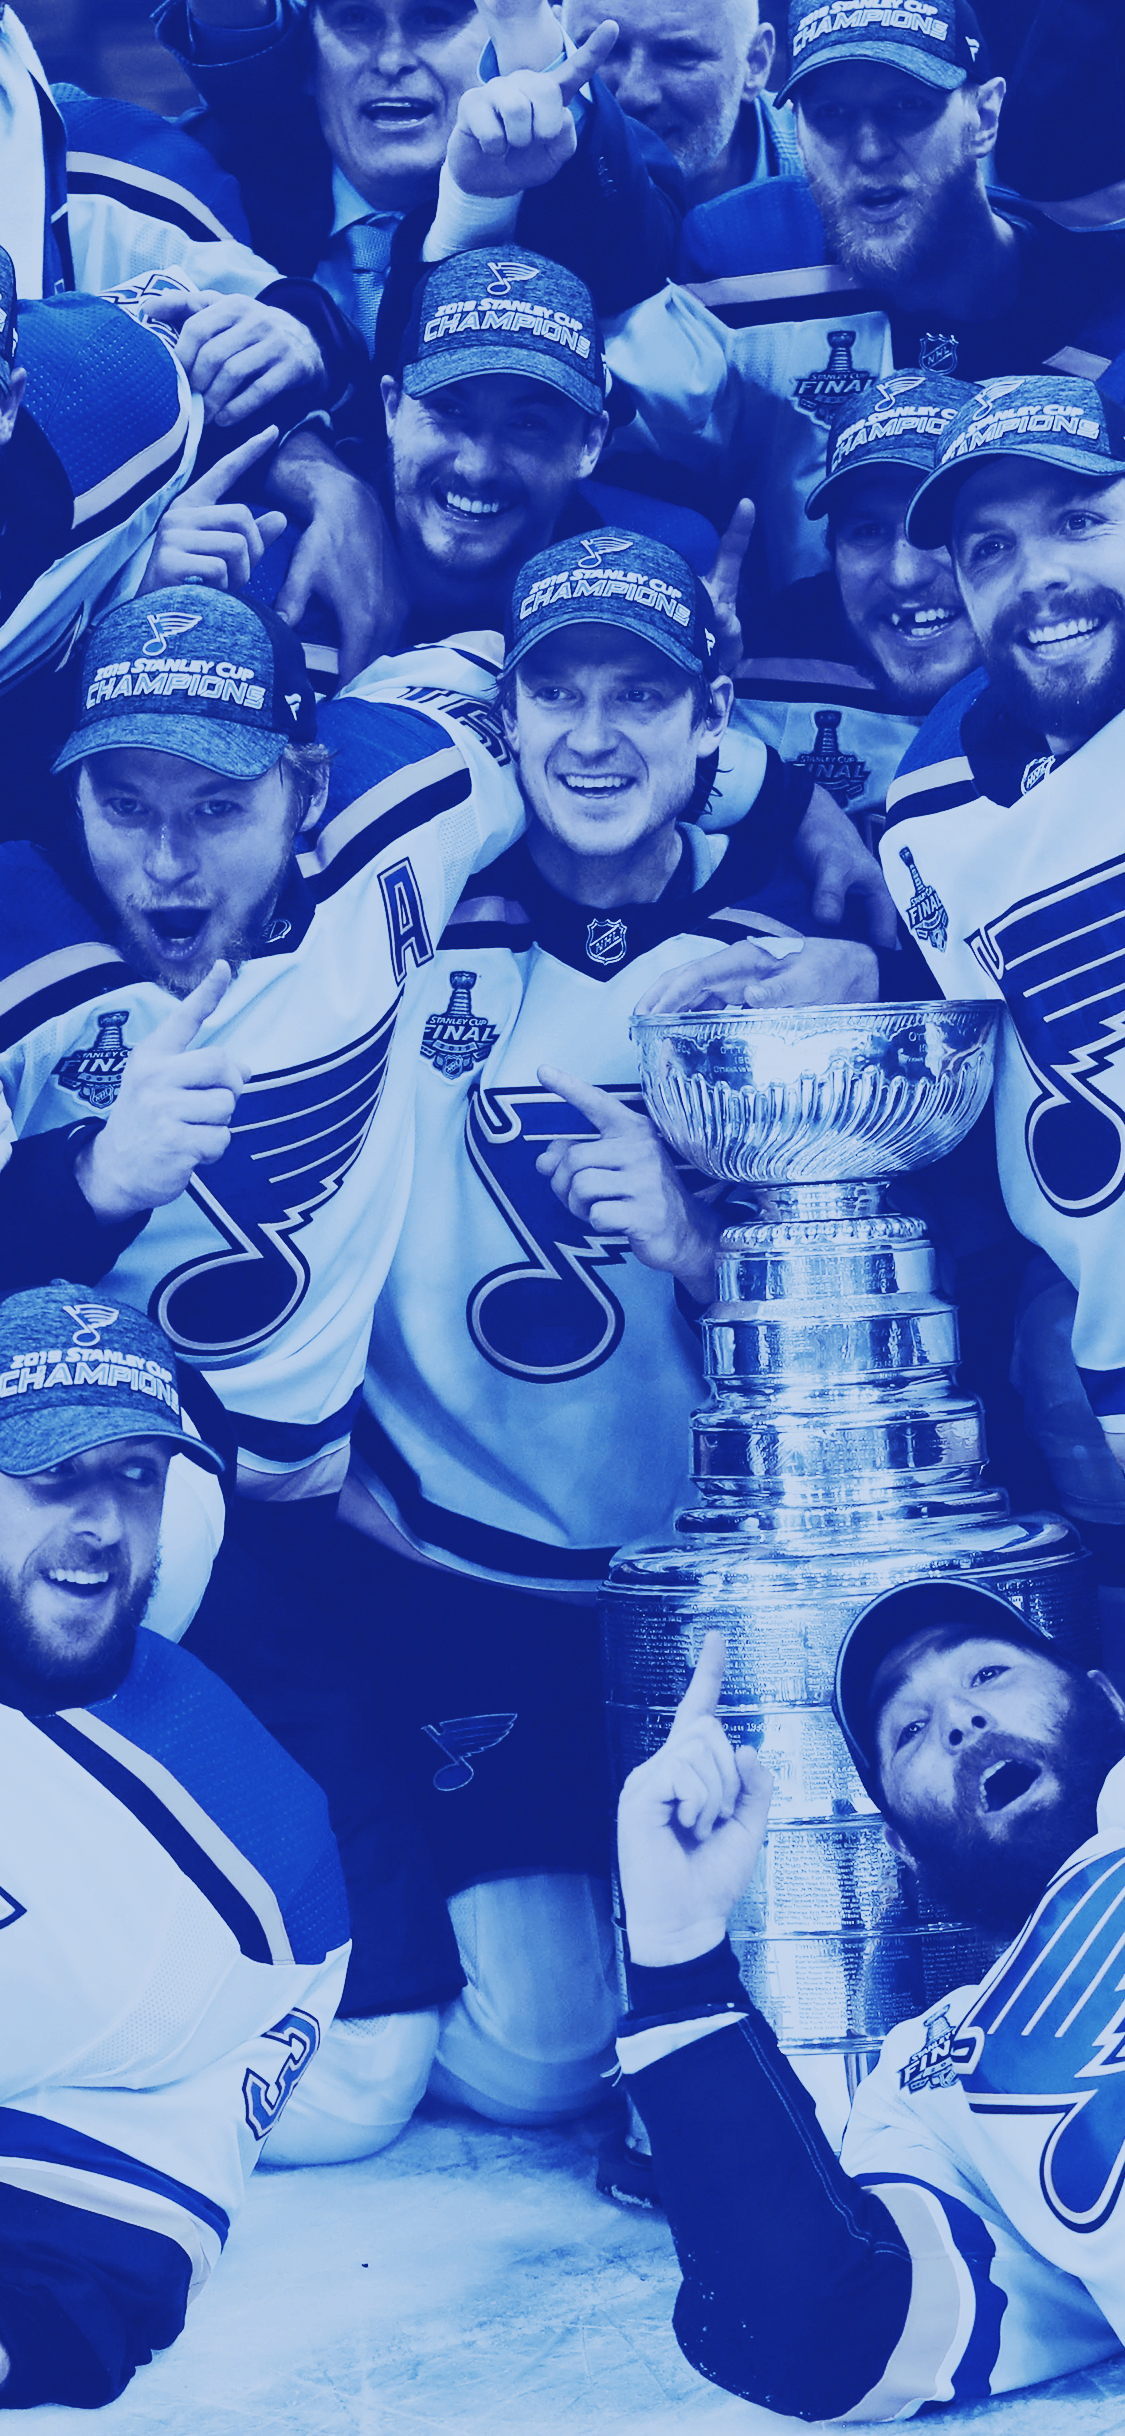 Free Download St Louis Blues Wallpapers And Lockscreens 1125x2436